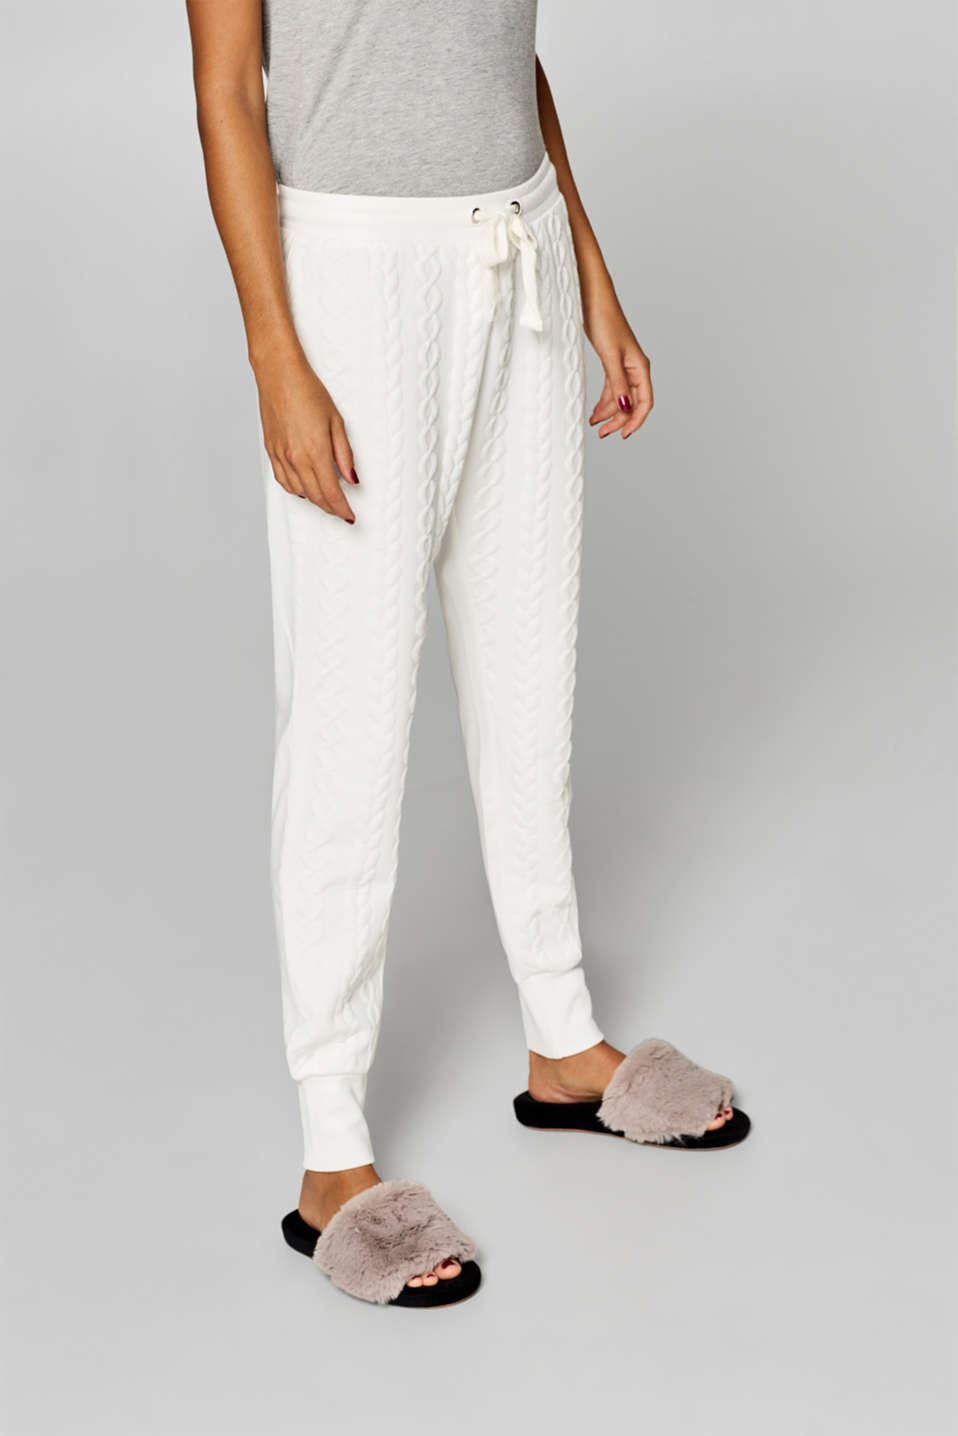 Esprit - Pyjama bottoms with a braided texture